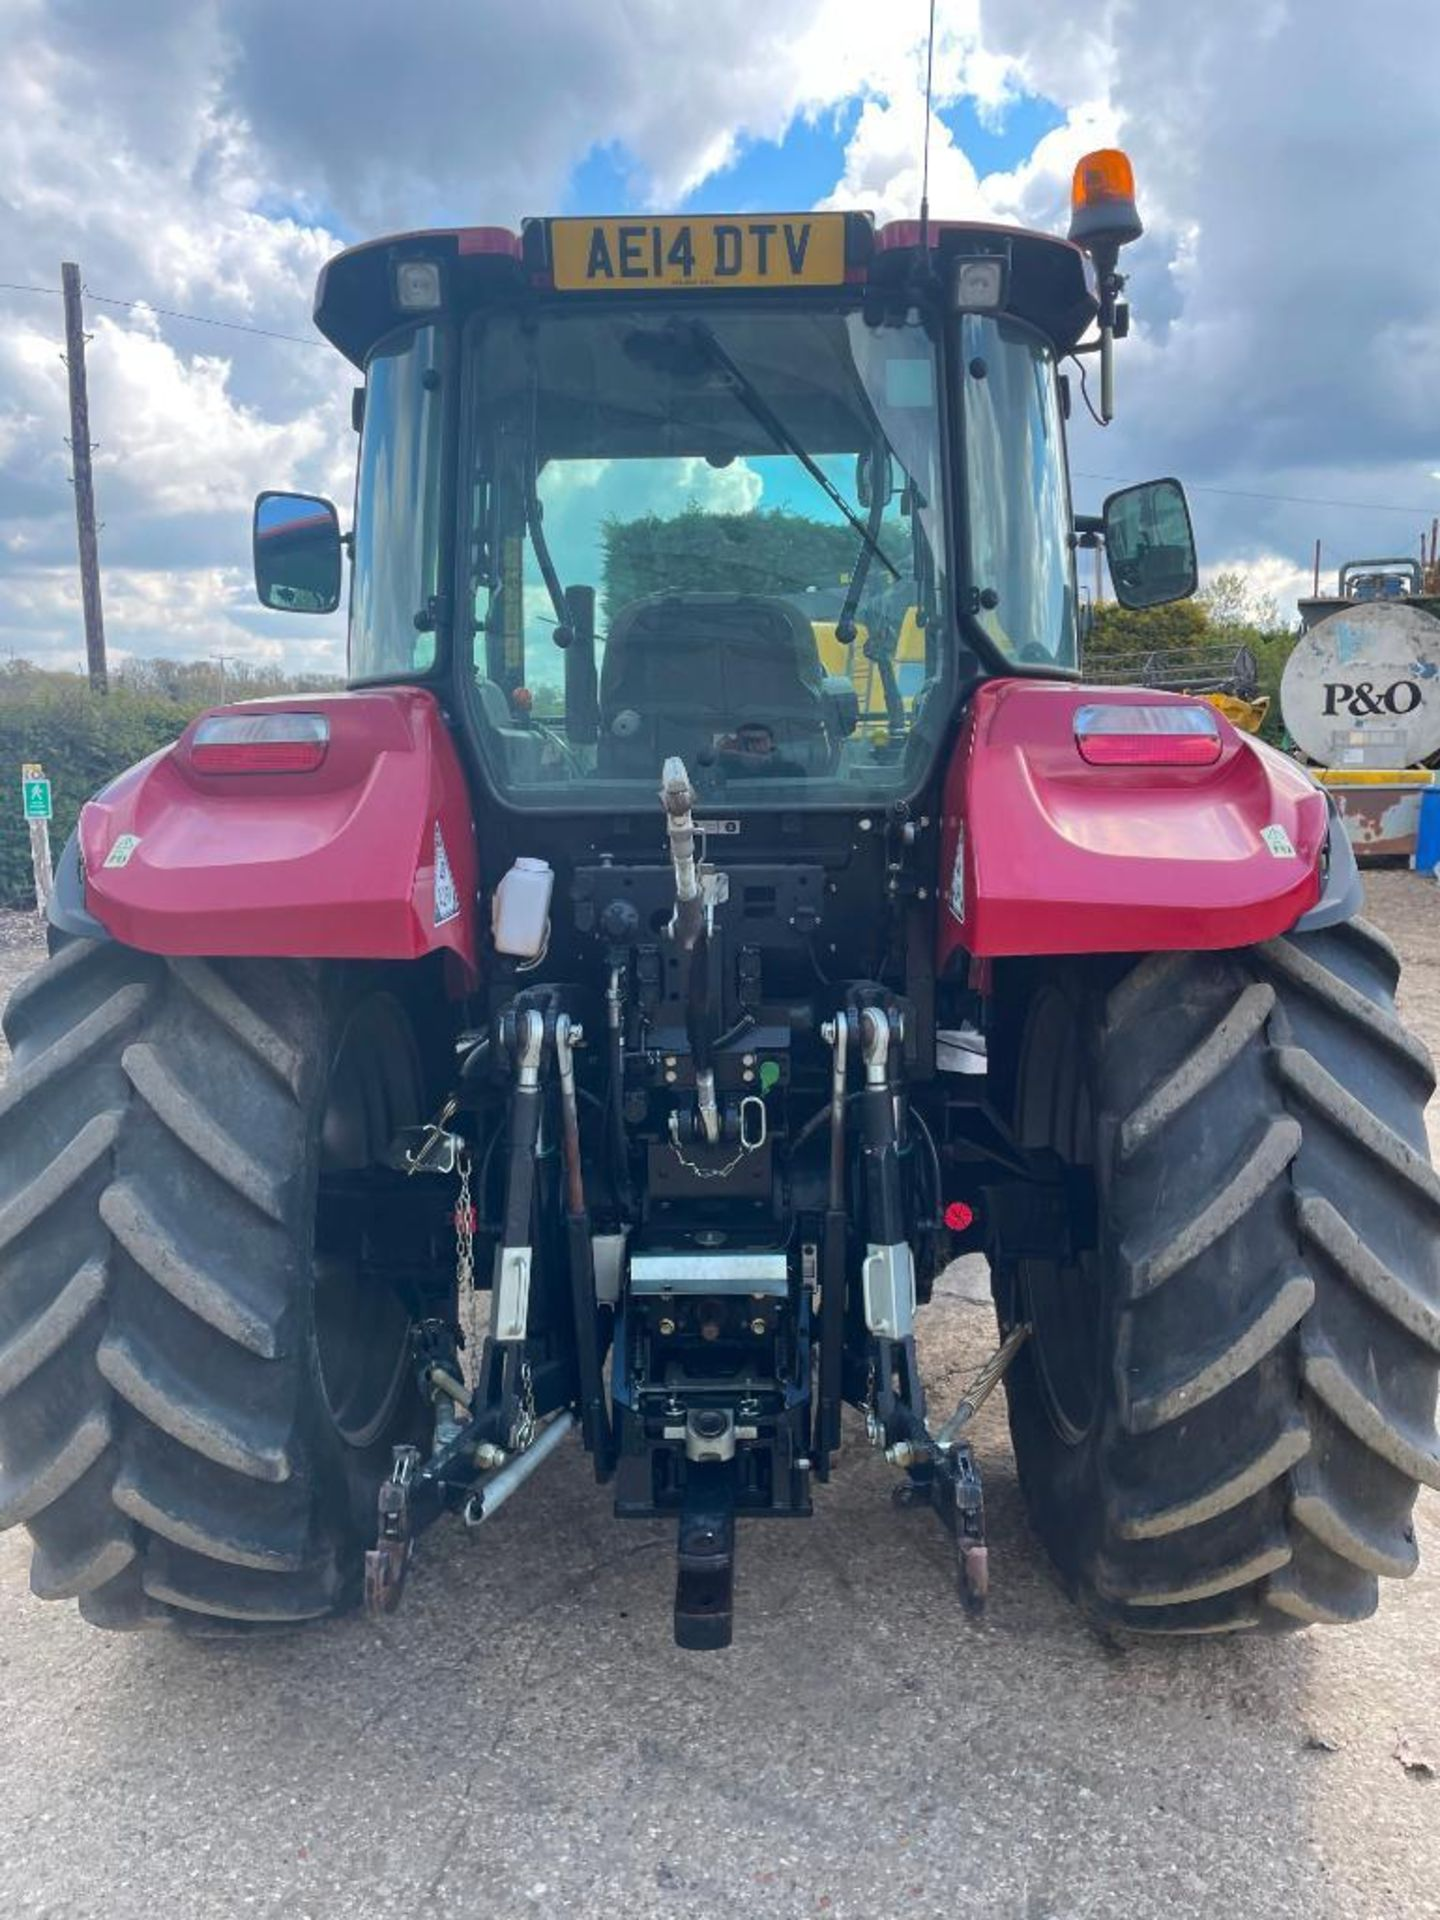 2014 Case IH Farmall 115U PRO 40Kph 4wd tractor with 2 spools, PUH on 440/65R24 front and 540/65R34 - Image 5 of 10